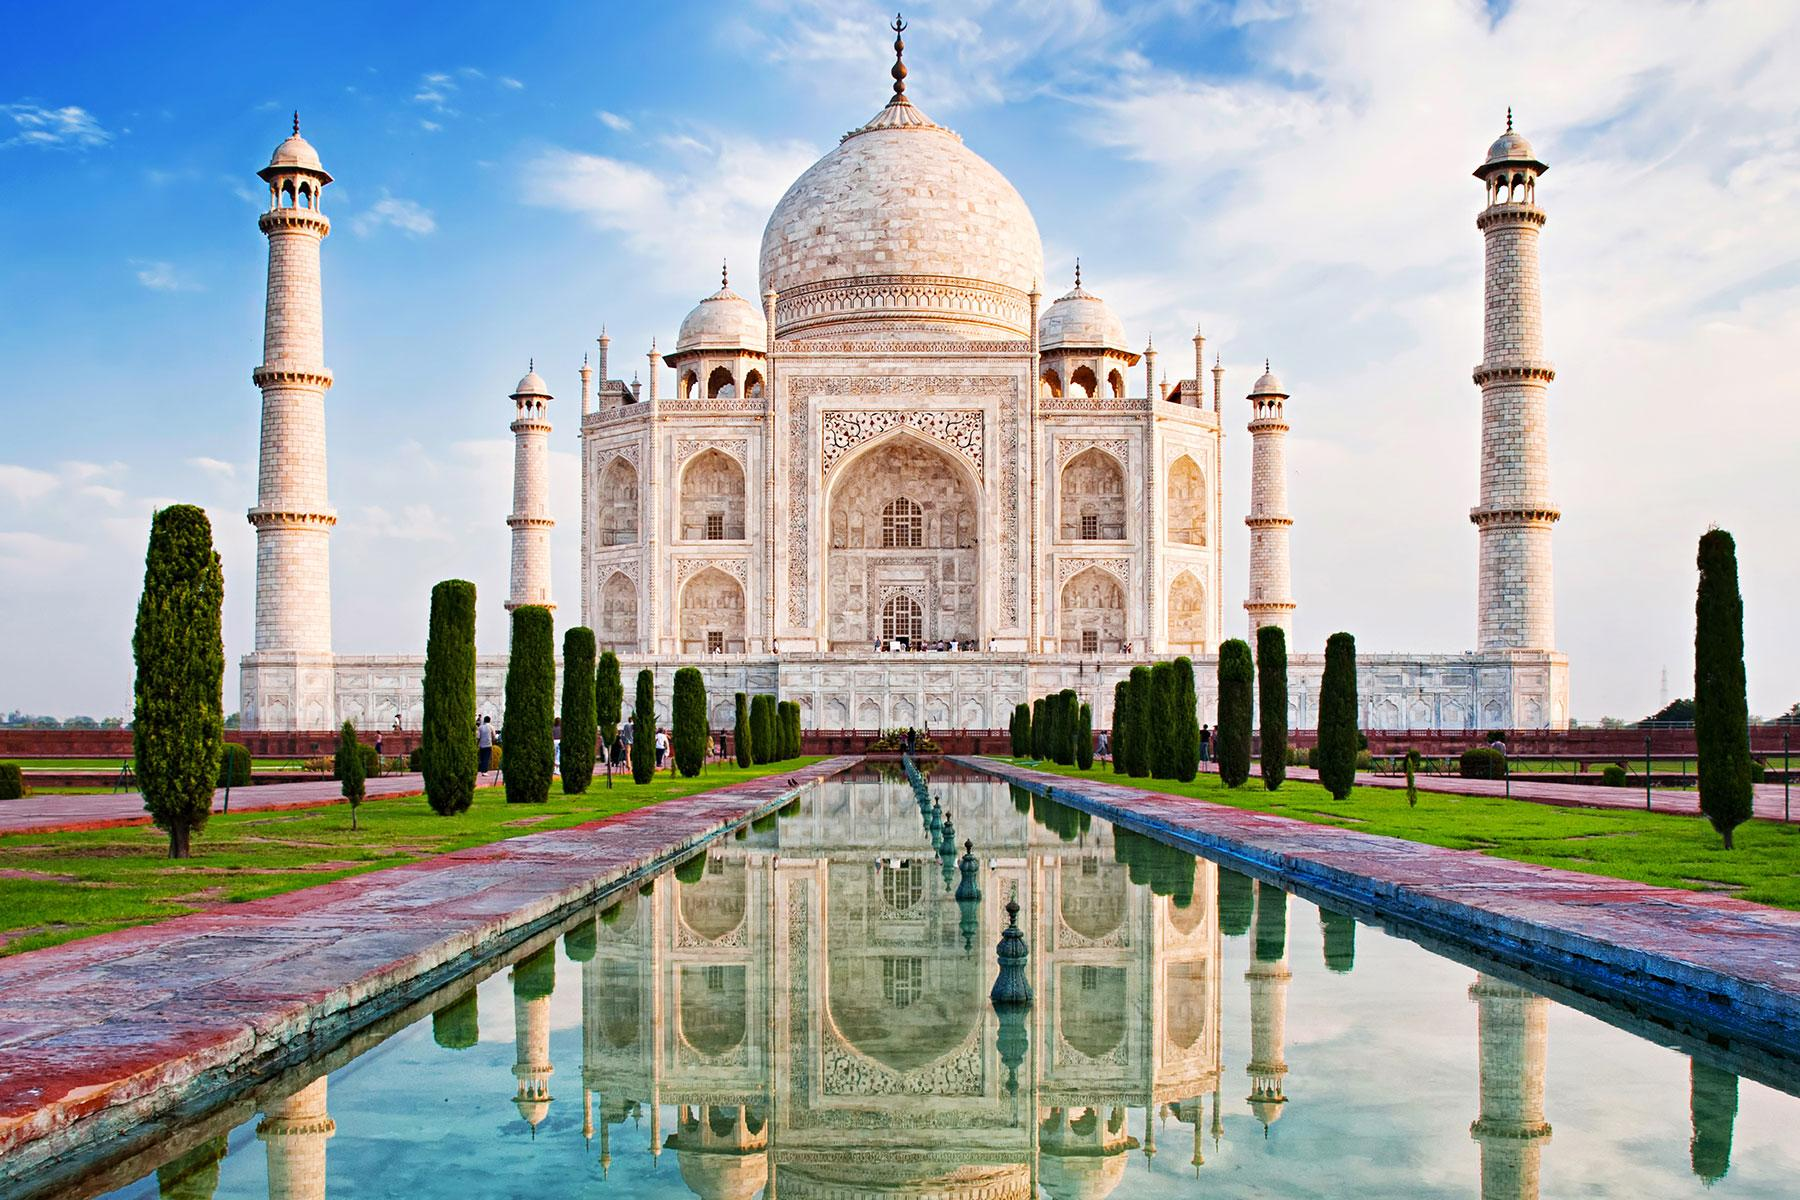 What You Need To Know About Traveling The Taj Mahal